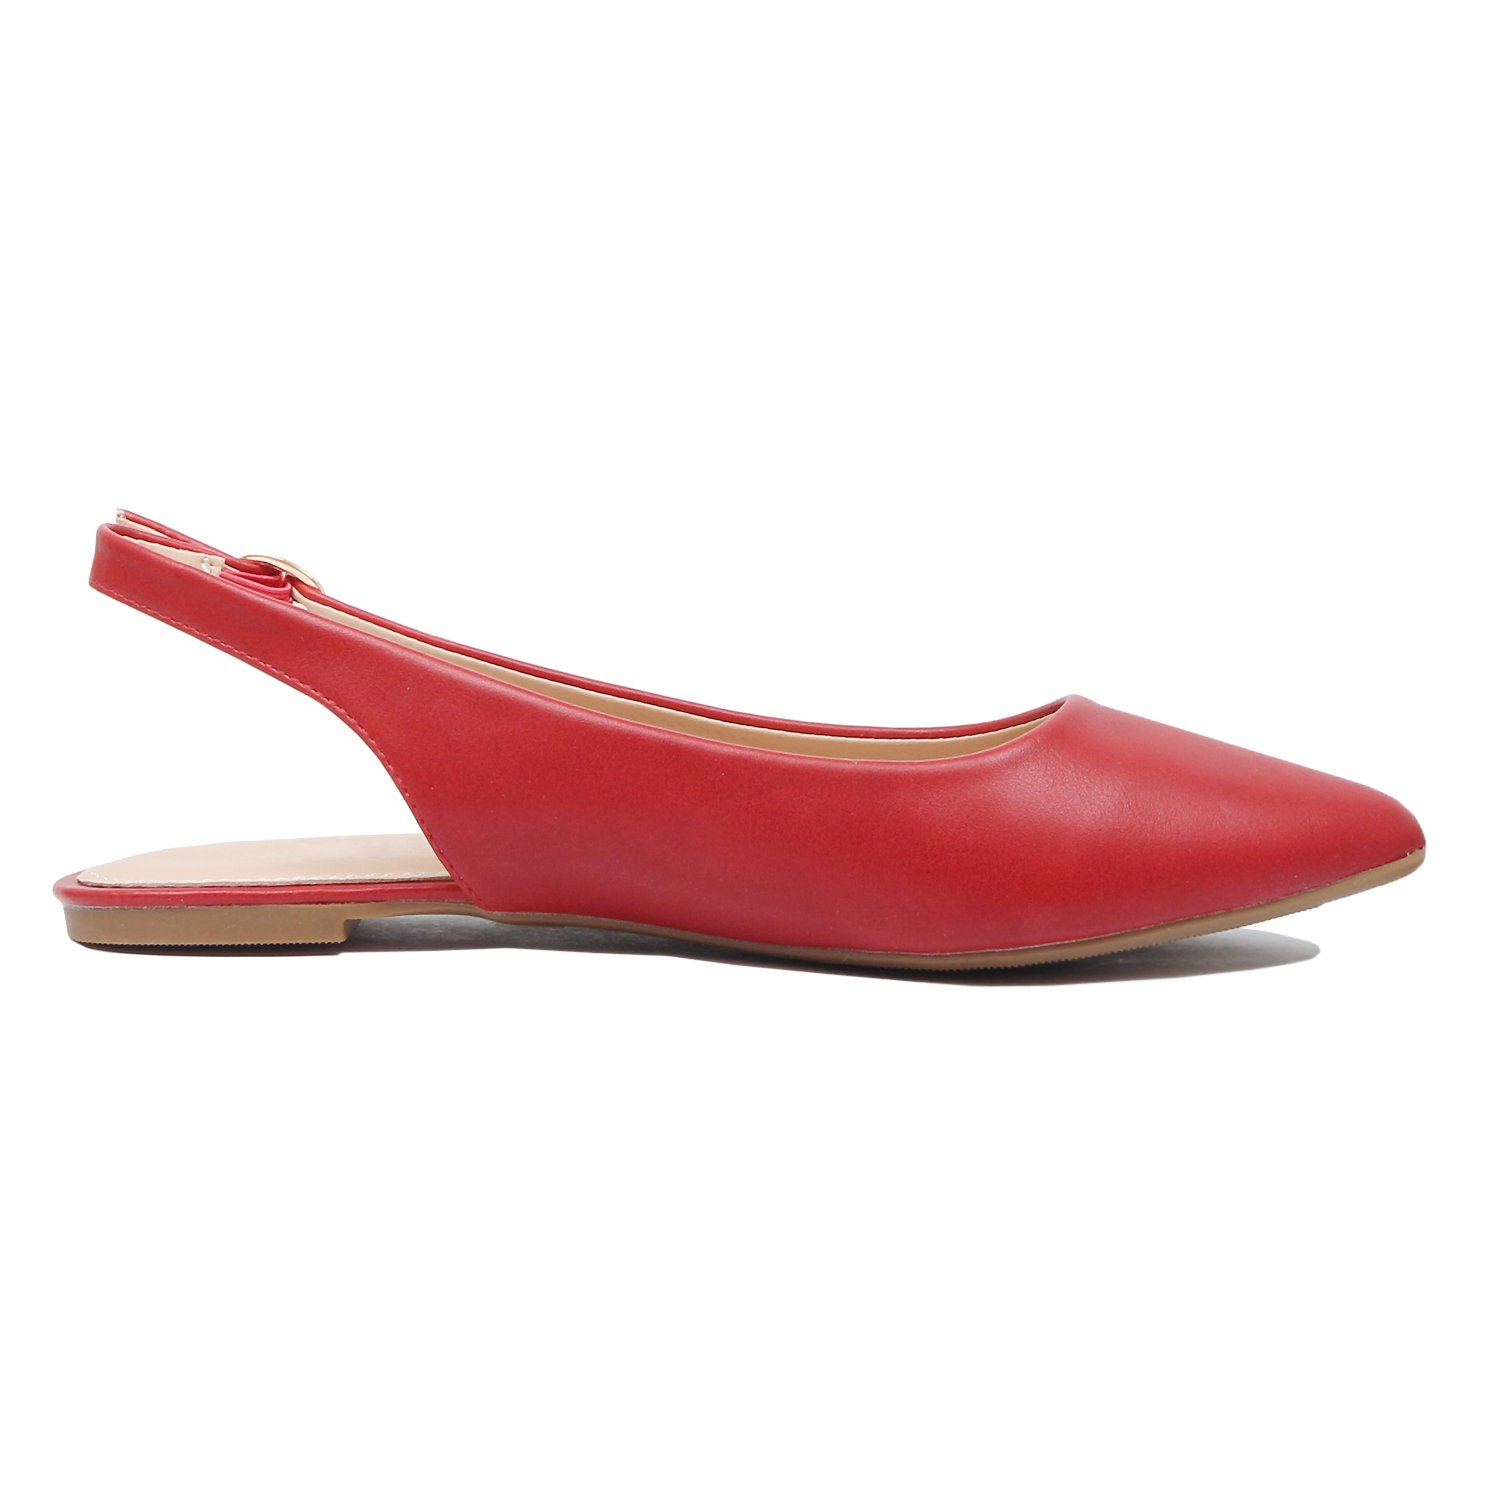 Guilty Heart - Womens Pointy Toe Slingback Buckle Comfortable Casual Dressy Flats (8.5 B(M) US, Red Pu) by Guilty Heart (Image #4)